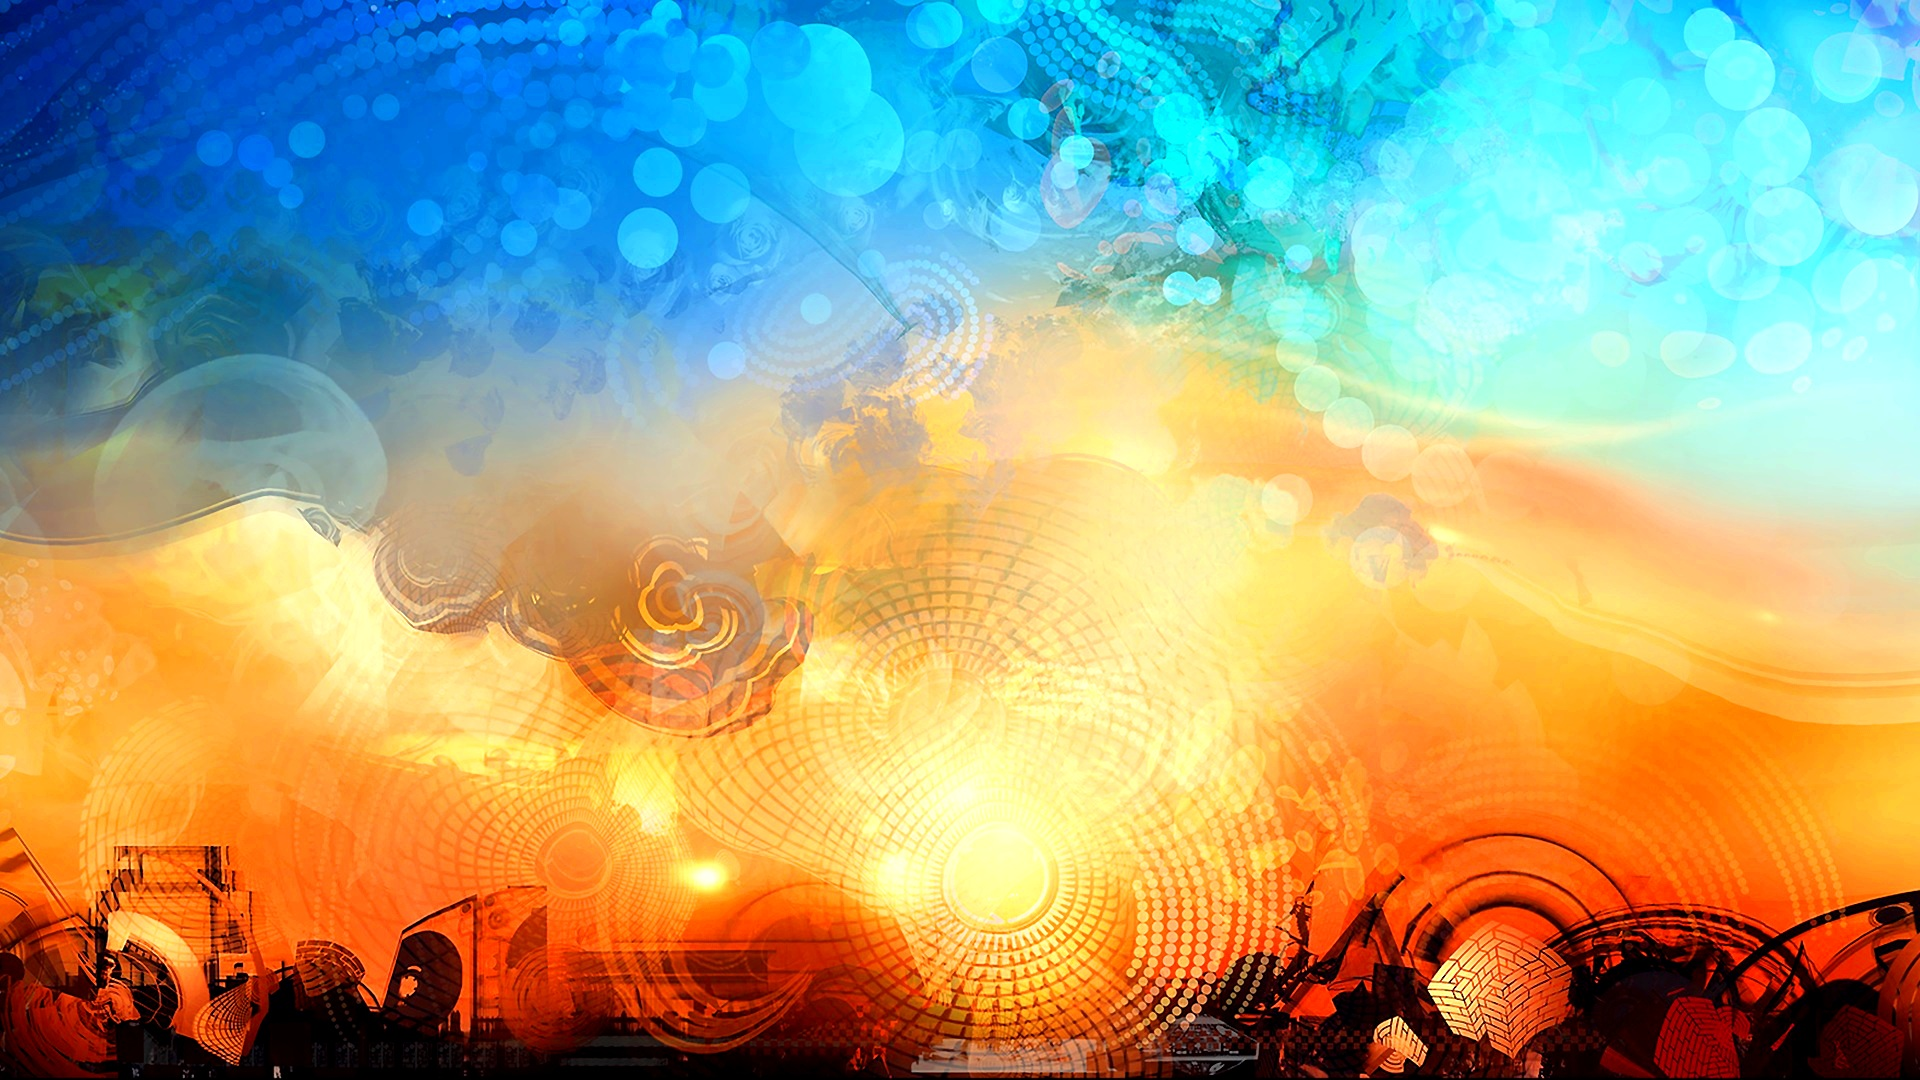 Hd Background Wallpaper 800x600: Psychedelic Full HD Wallpaper And Background Image